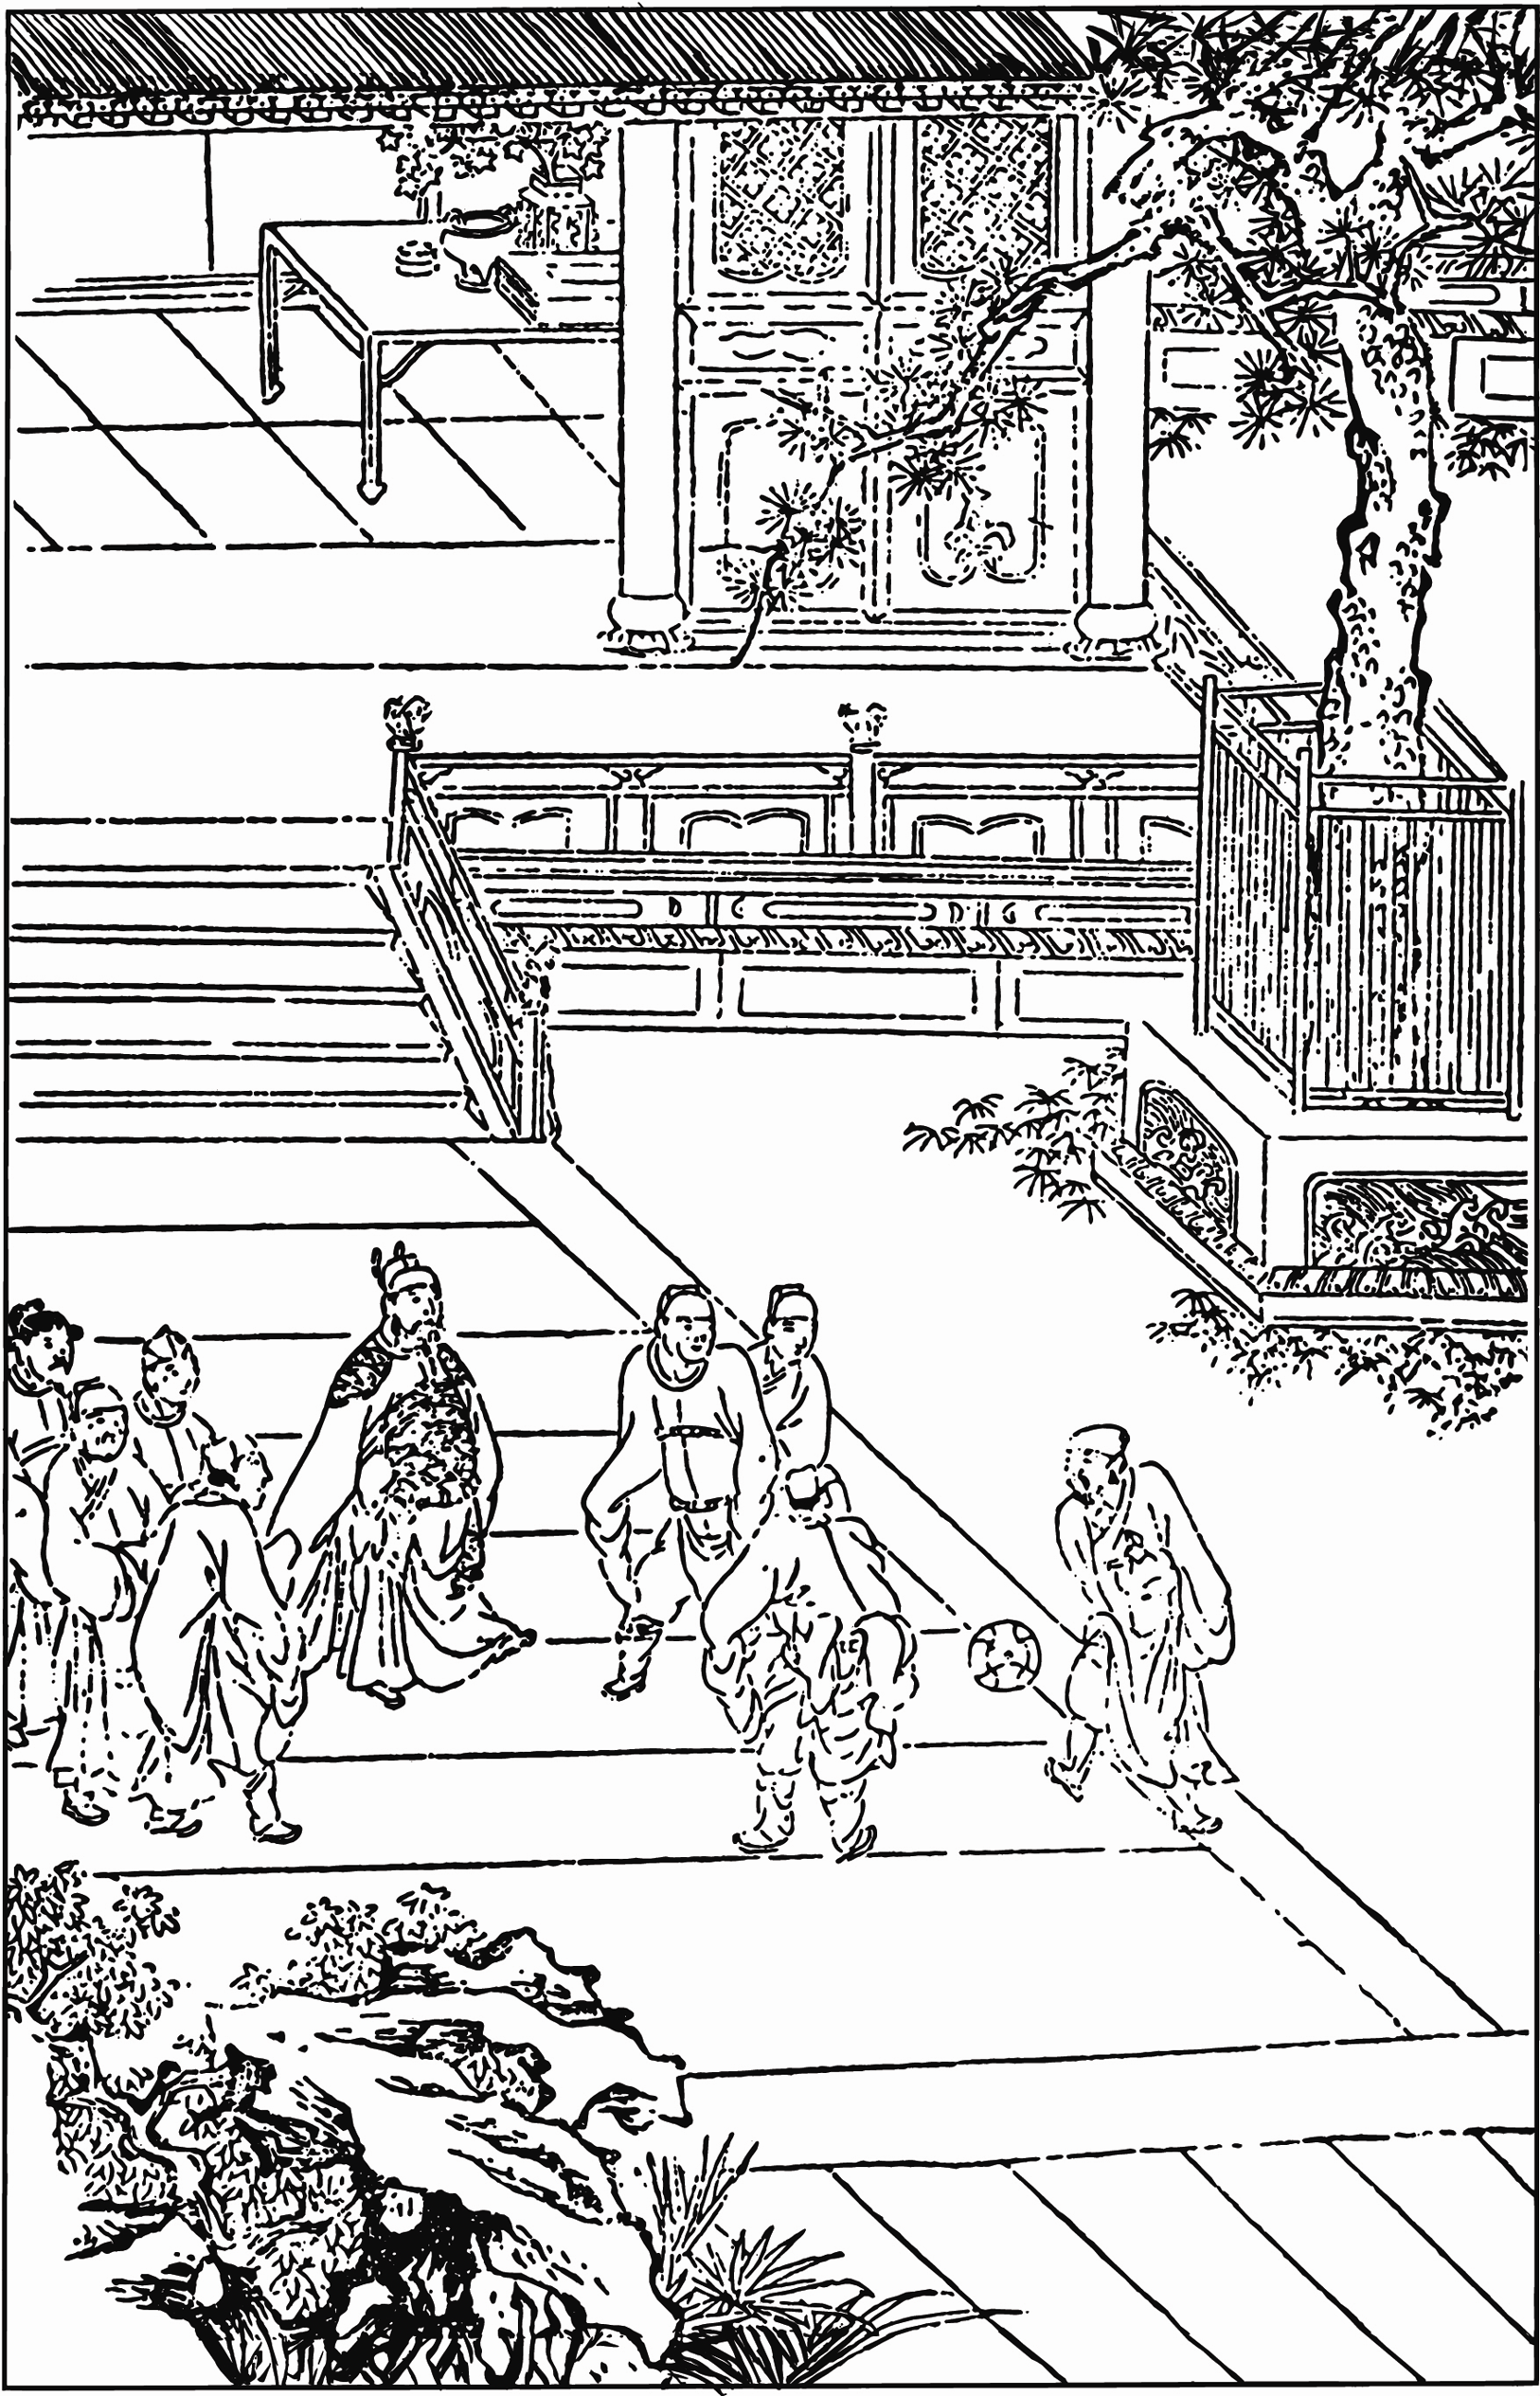 Illustration of a game of cuju from Water Margin, from a 15th century woodcut edition